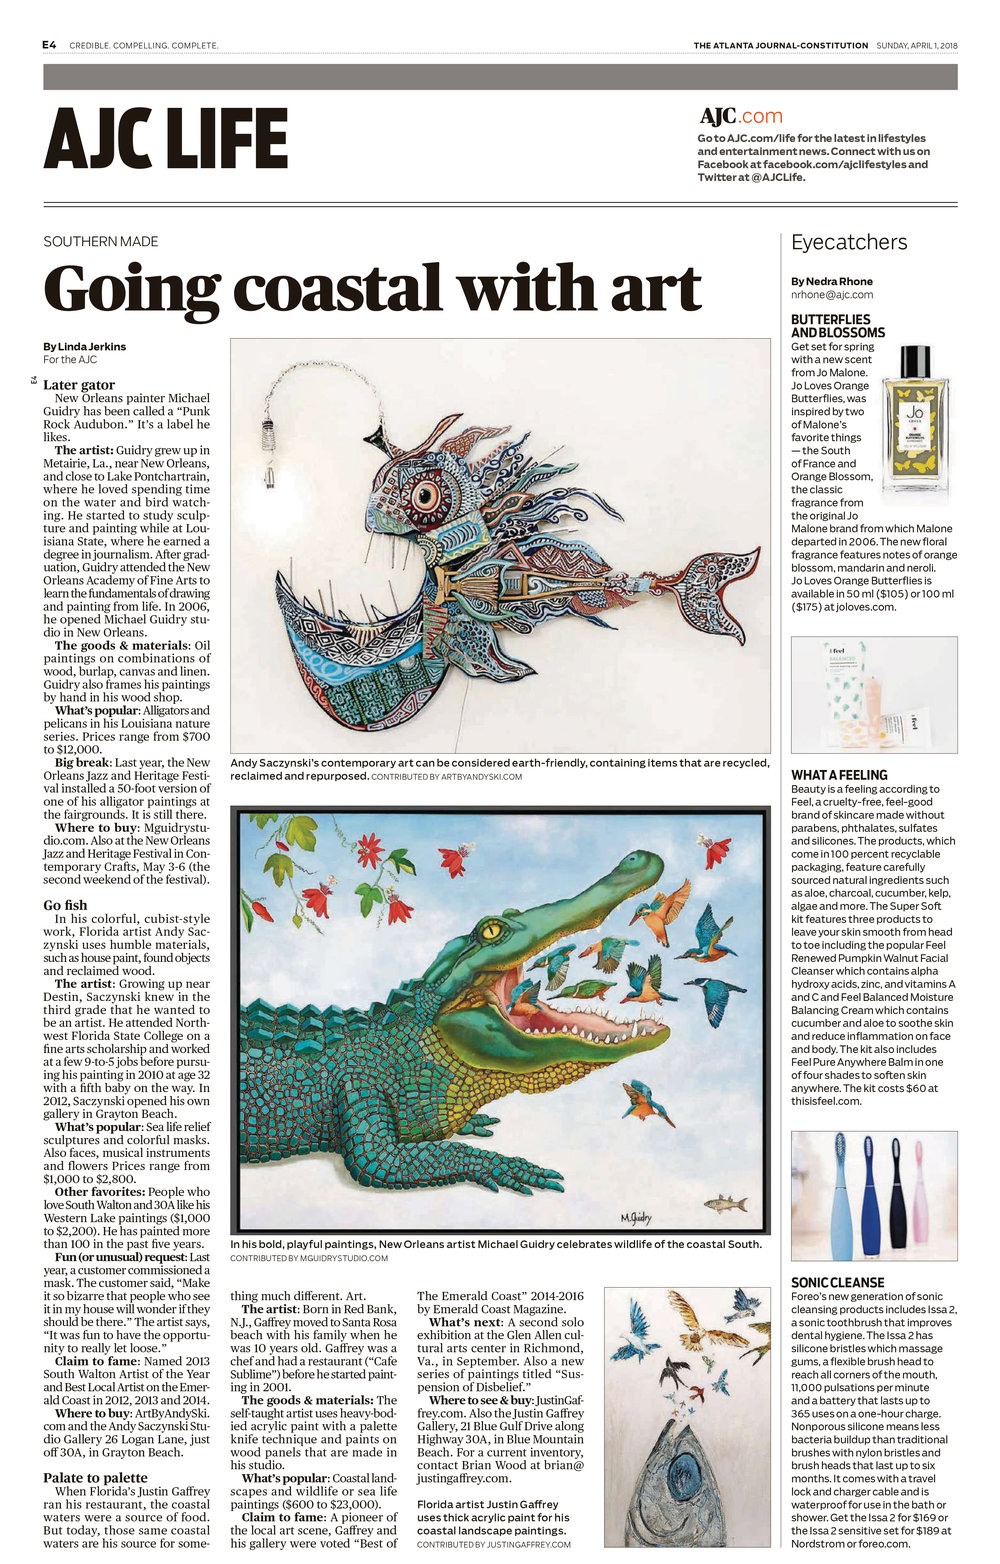 atlanta-journal-constitution-m-michael-guidry-neworleans-louisiana-artist-studio-painter-alligator-interview-article.jpg